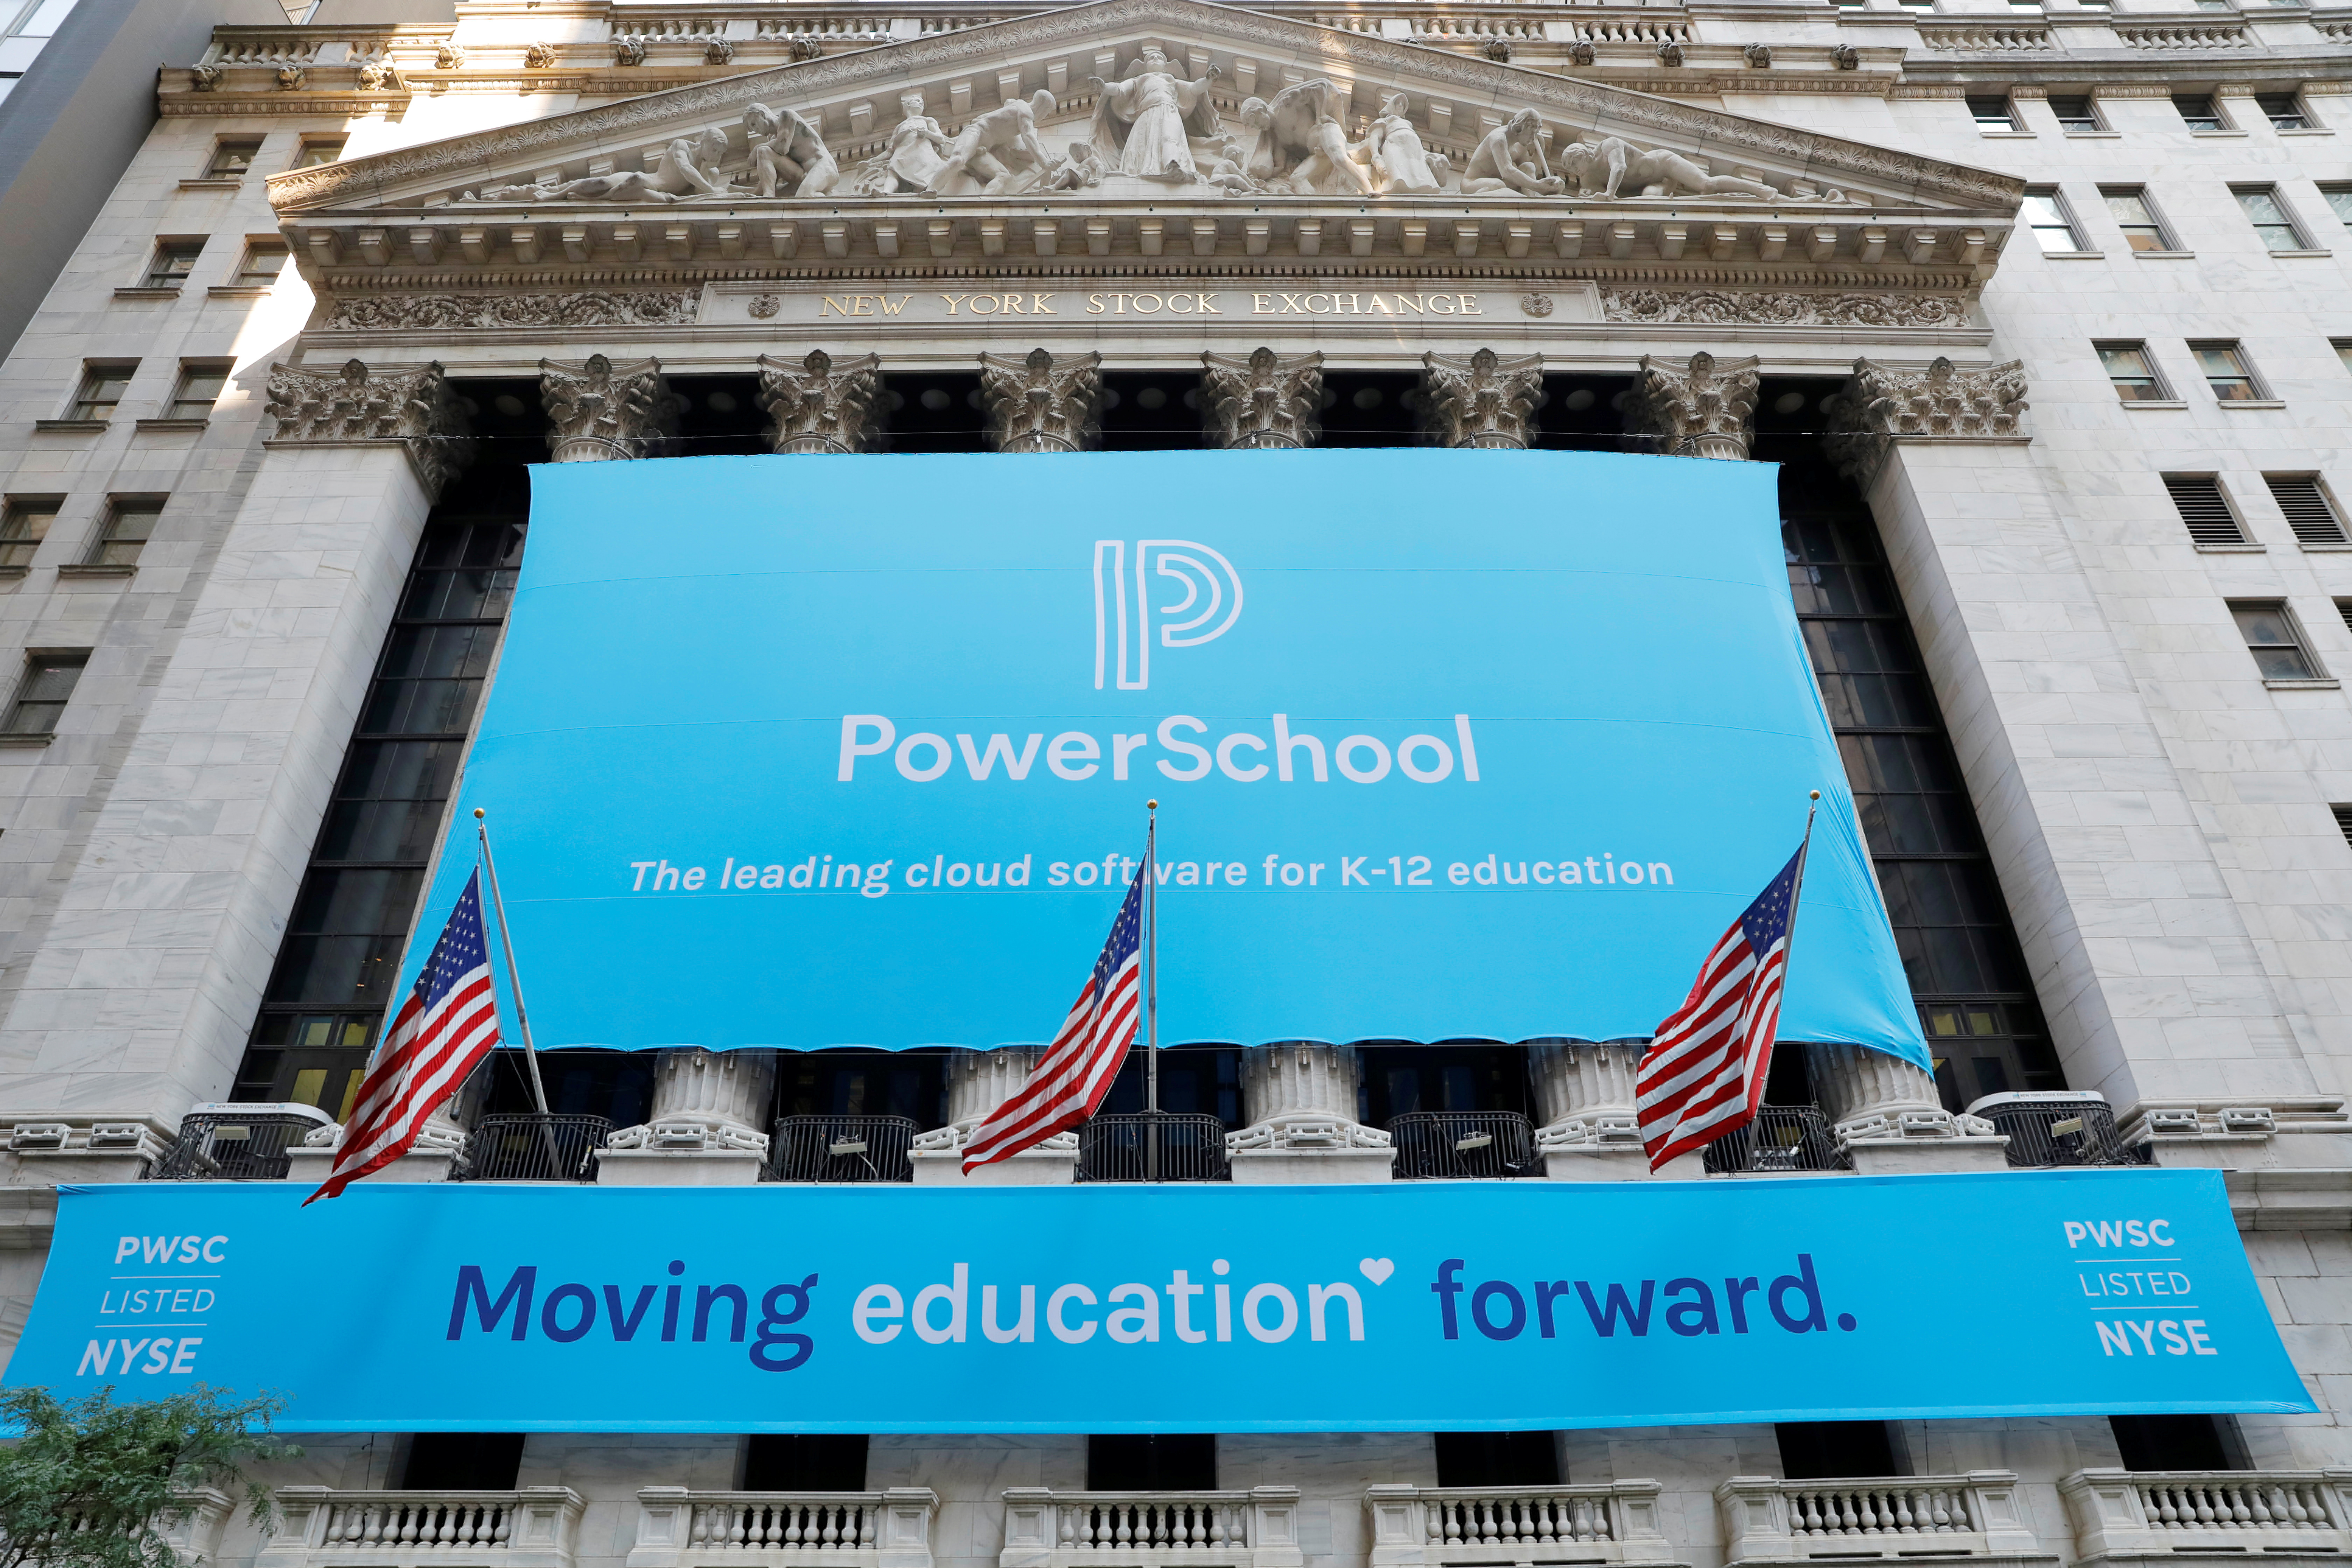 Signage for PowerSchool (NYSE:PWSC) is seen ahead of their Initial public offering (IPO) at the New York Stock Exchange (NYSE) in New York City, New York, U.S., July 28, 2021. REUTERS/Andrew Kelly